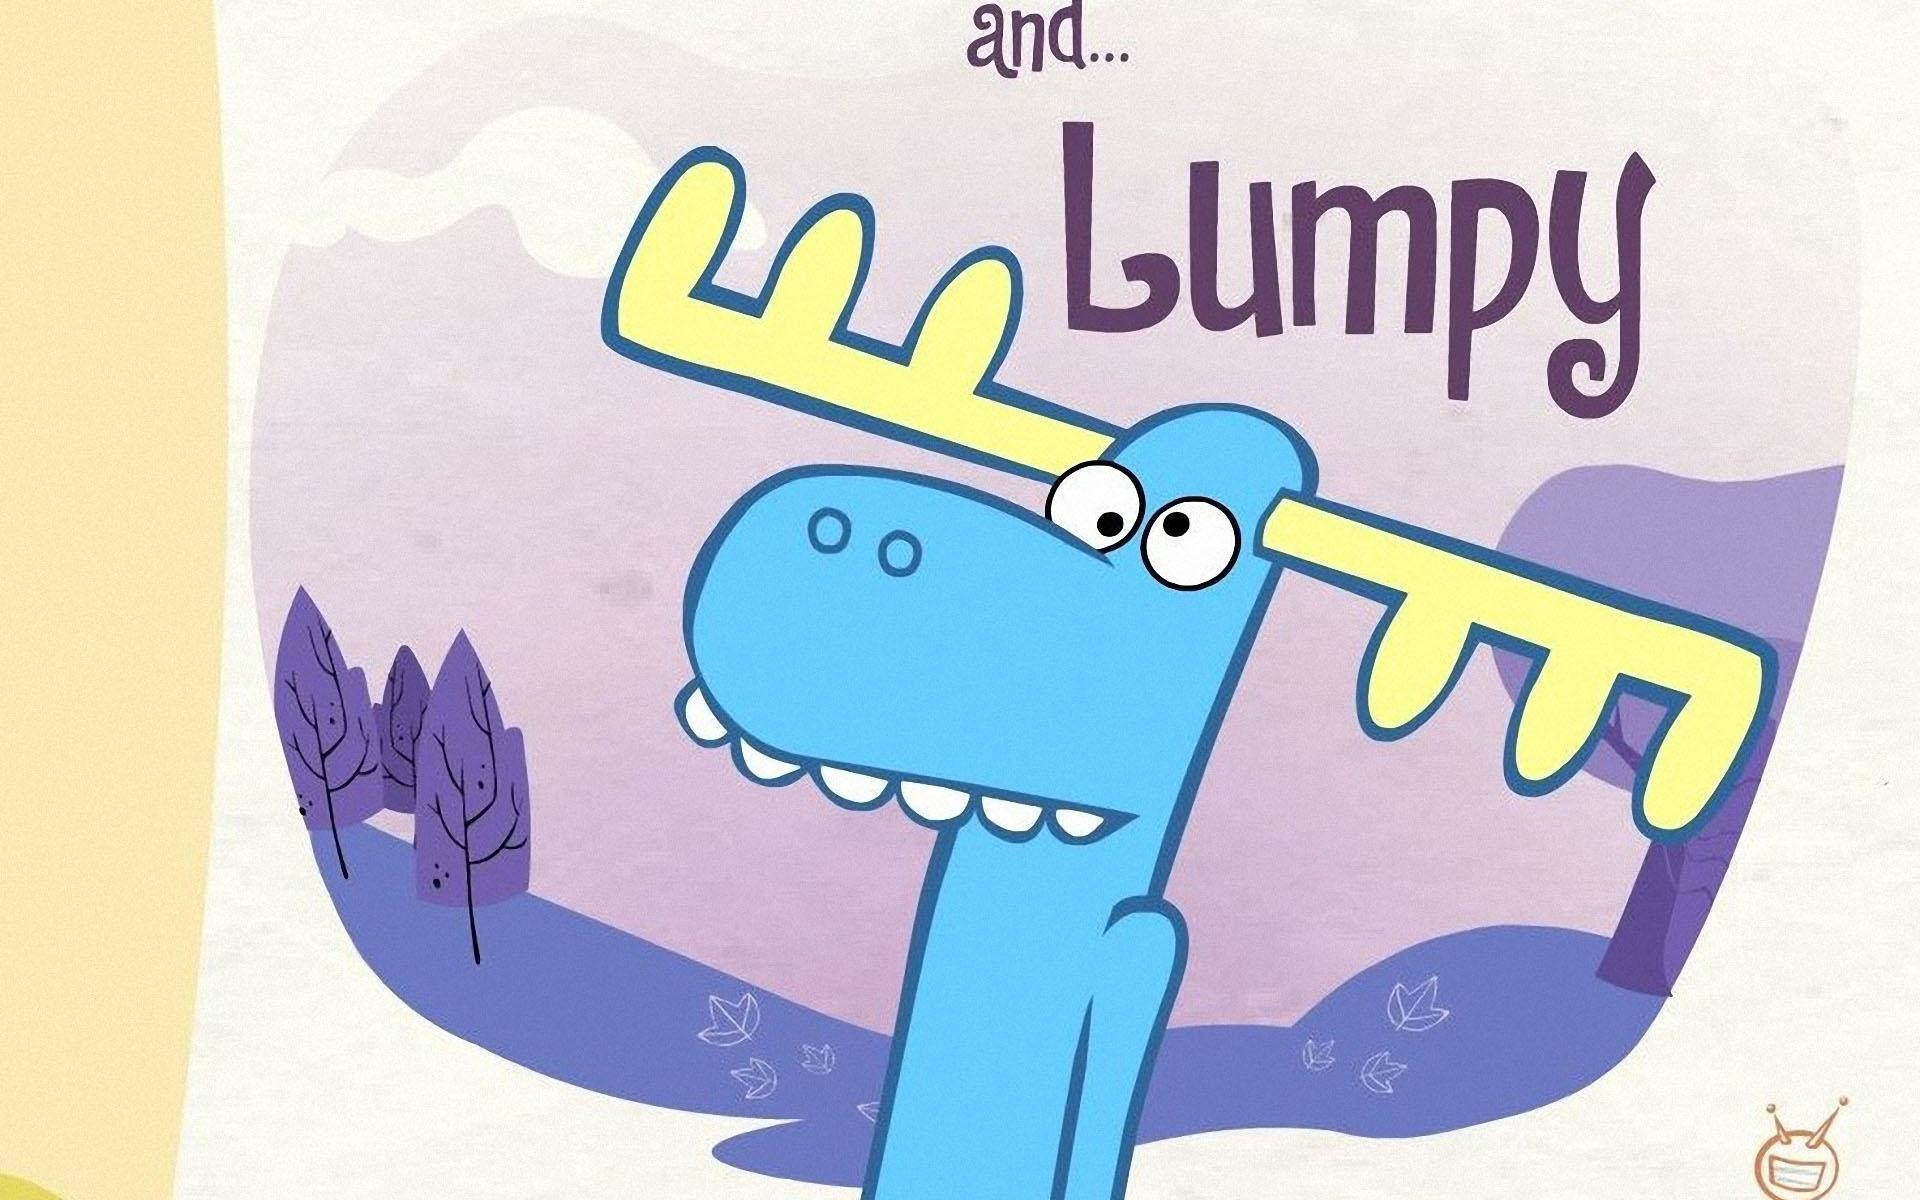 1920x1200 Awesome Happy Tree Friends Lumpy Wallpaper Download free wallpapers and  desktop backgrounds in a variety of